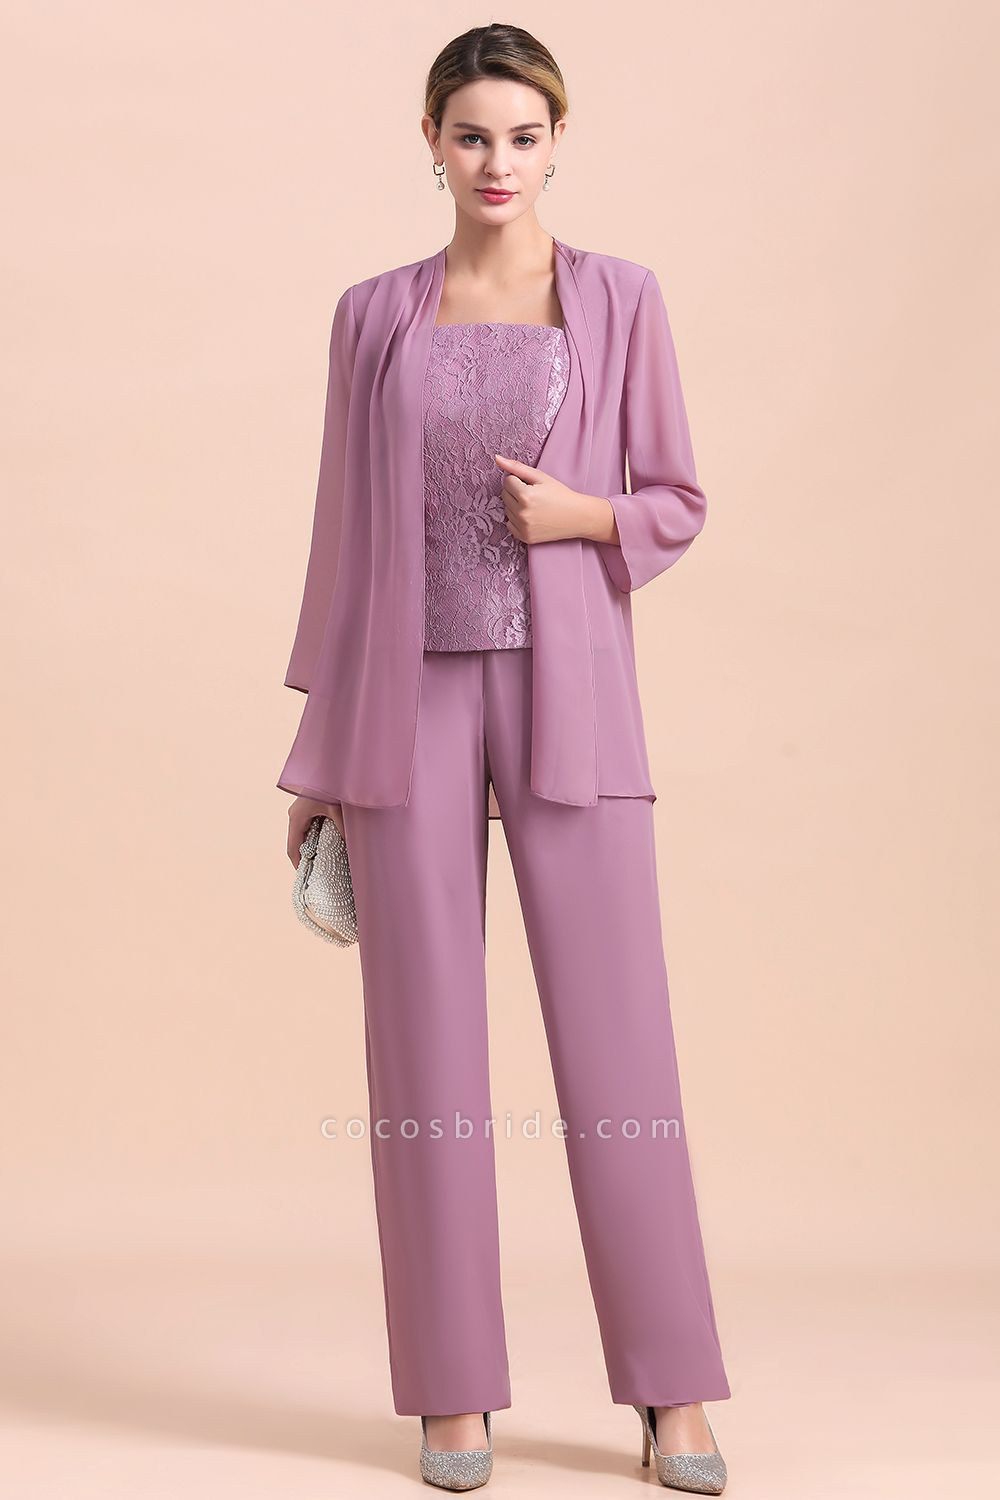 Elegant Lace Cap Sleeves Chiffon Mother of Bride Jumpsuit With Wrap